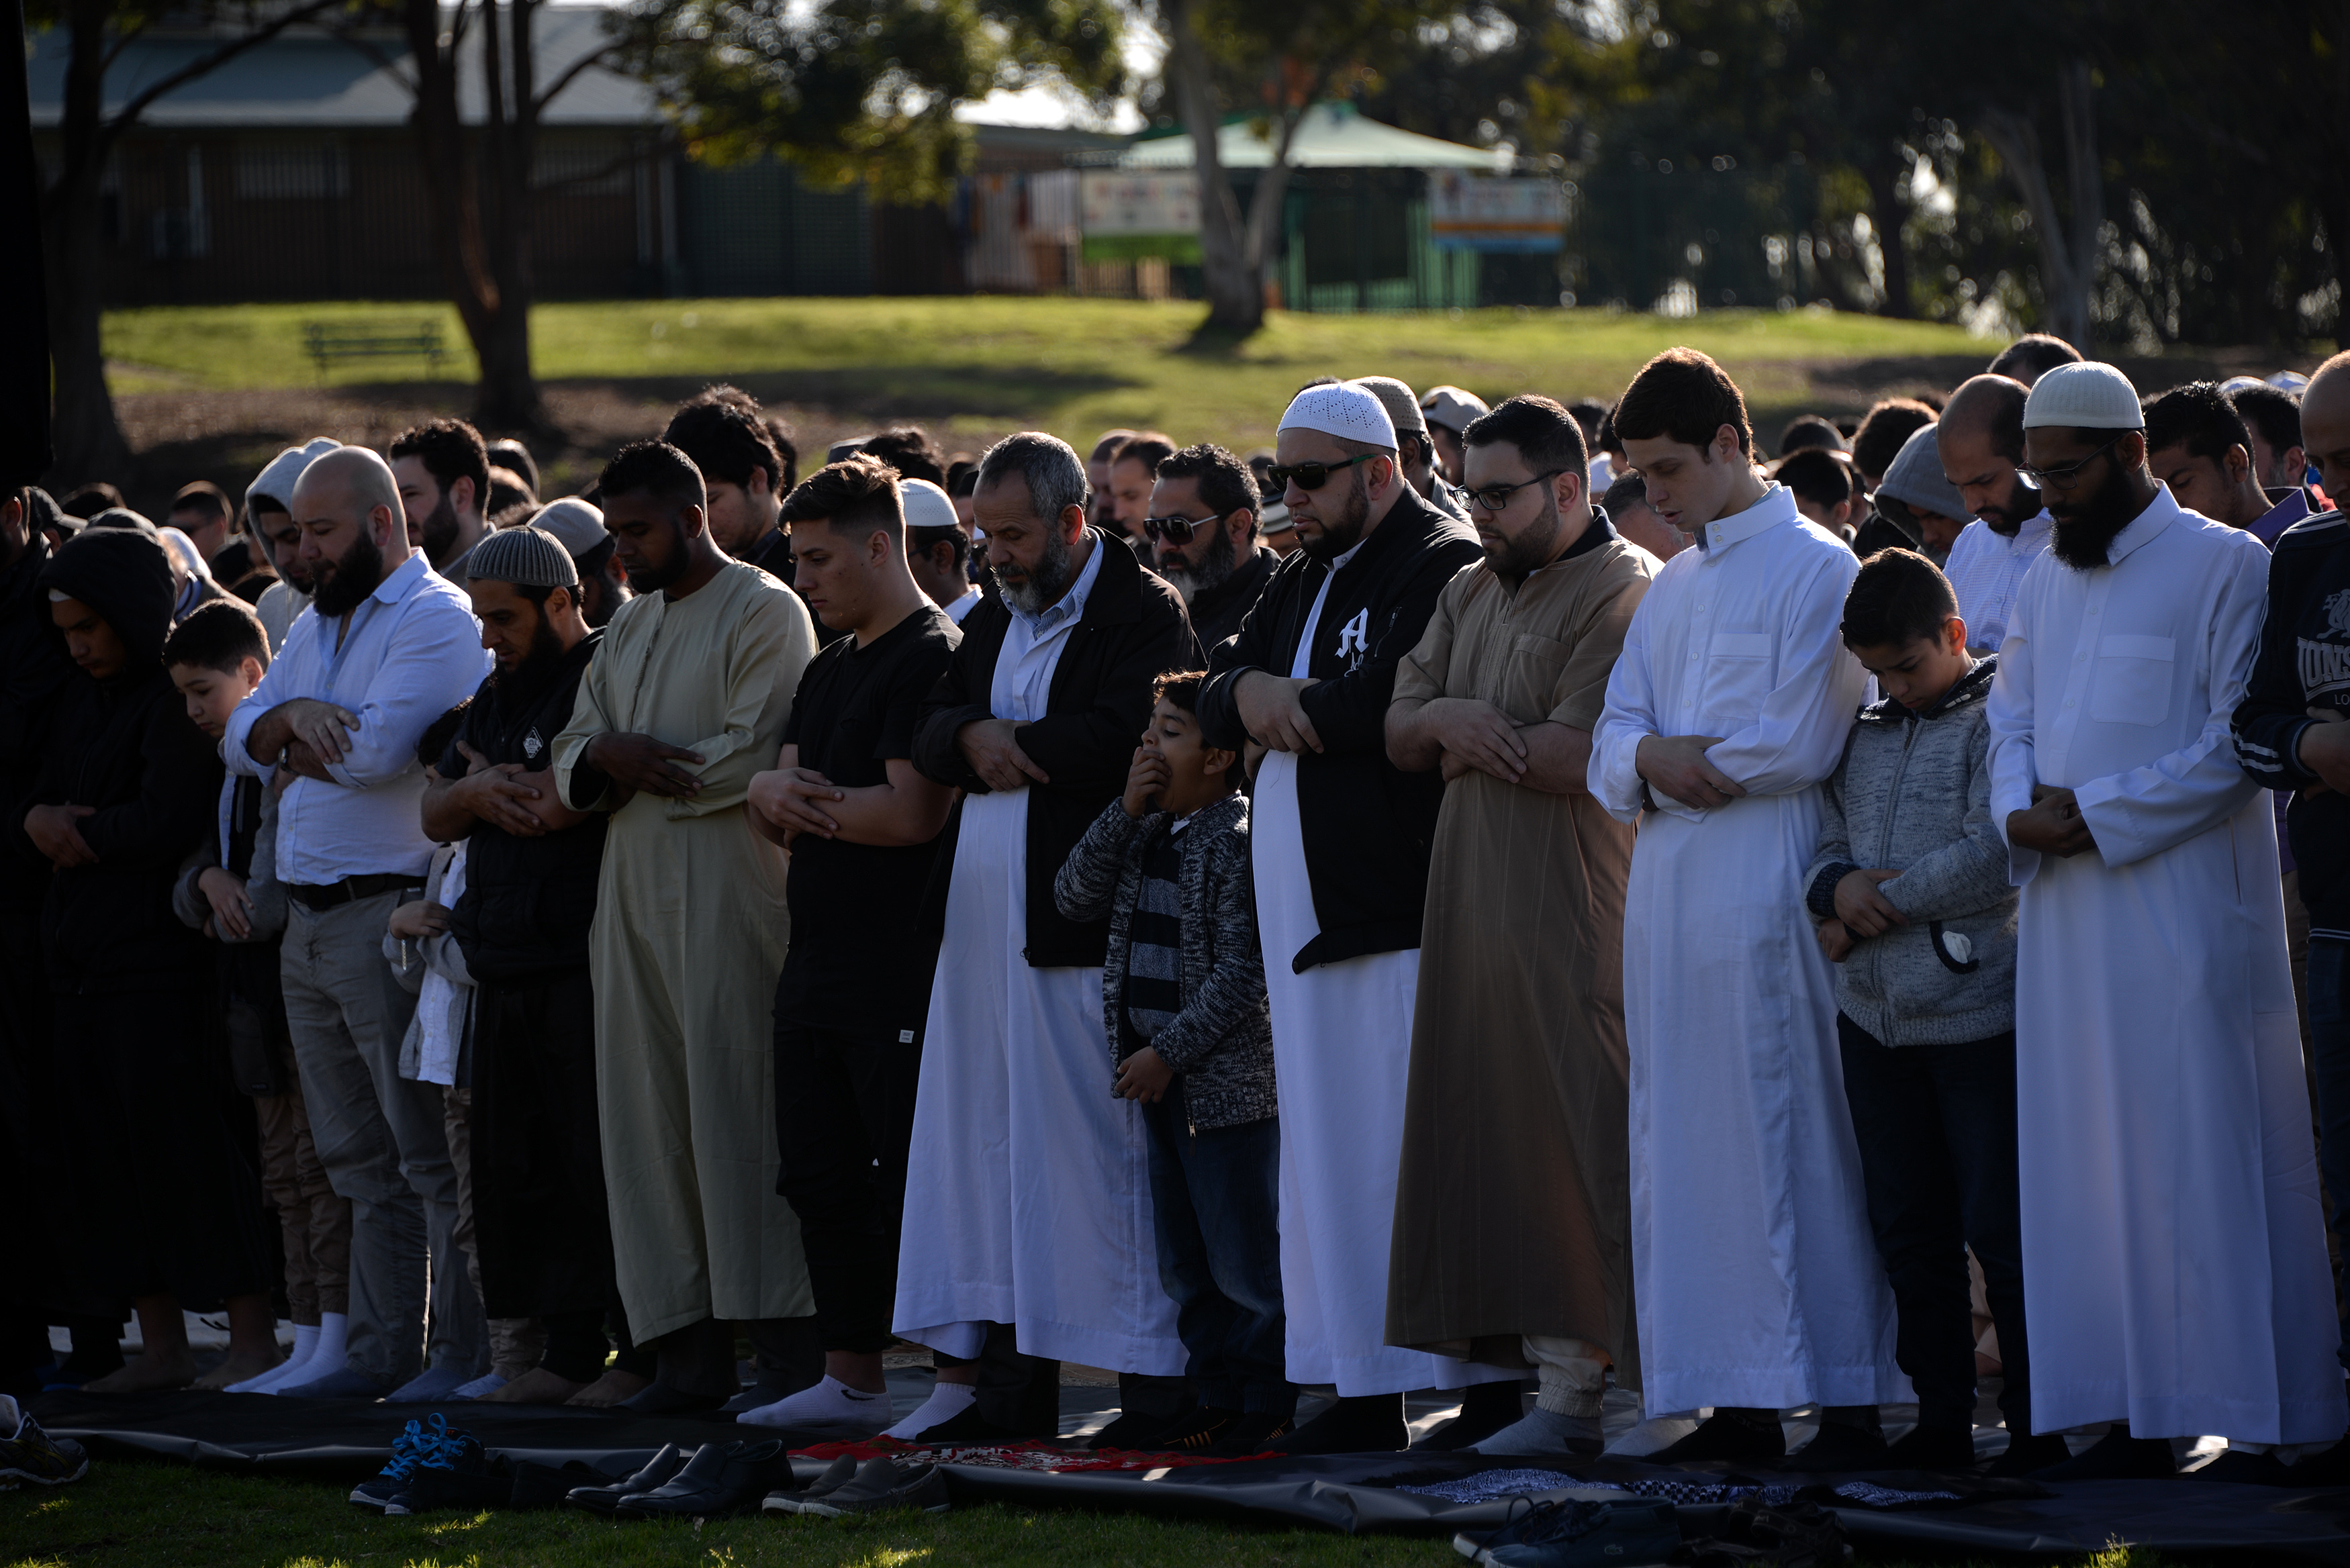 Captivating Images As Muslims Pray To Celebrate Eid